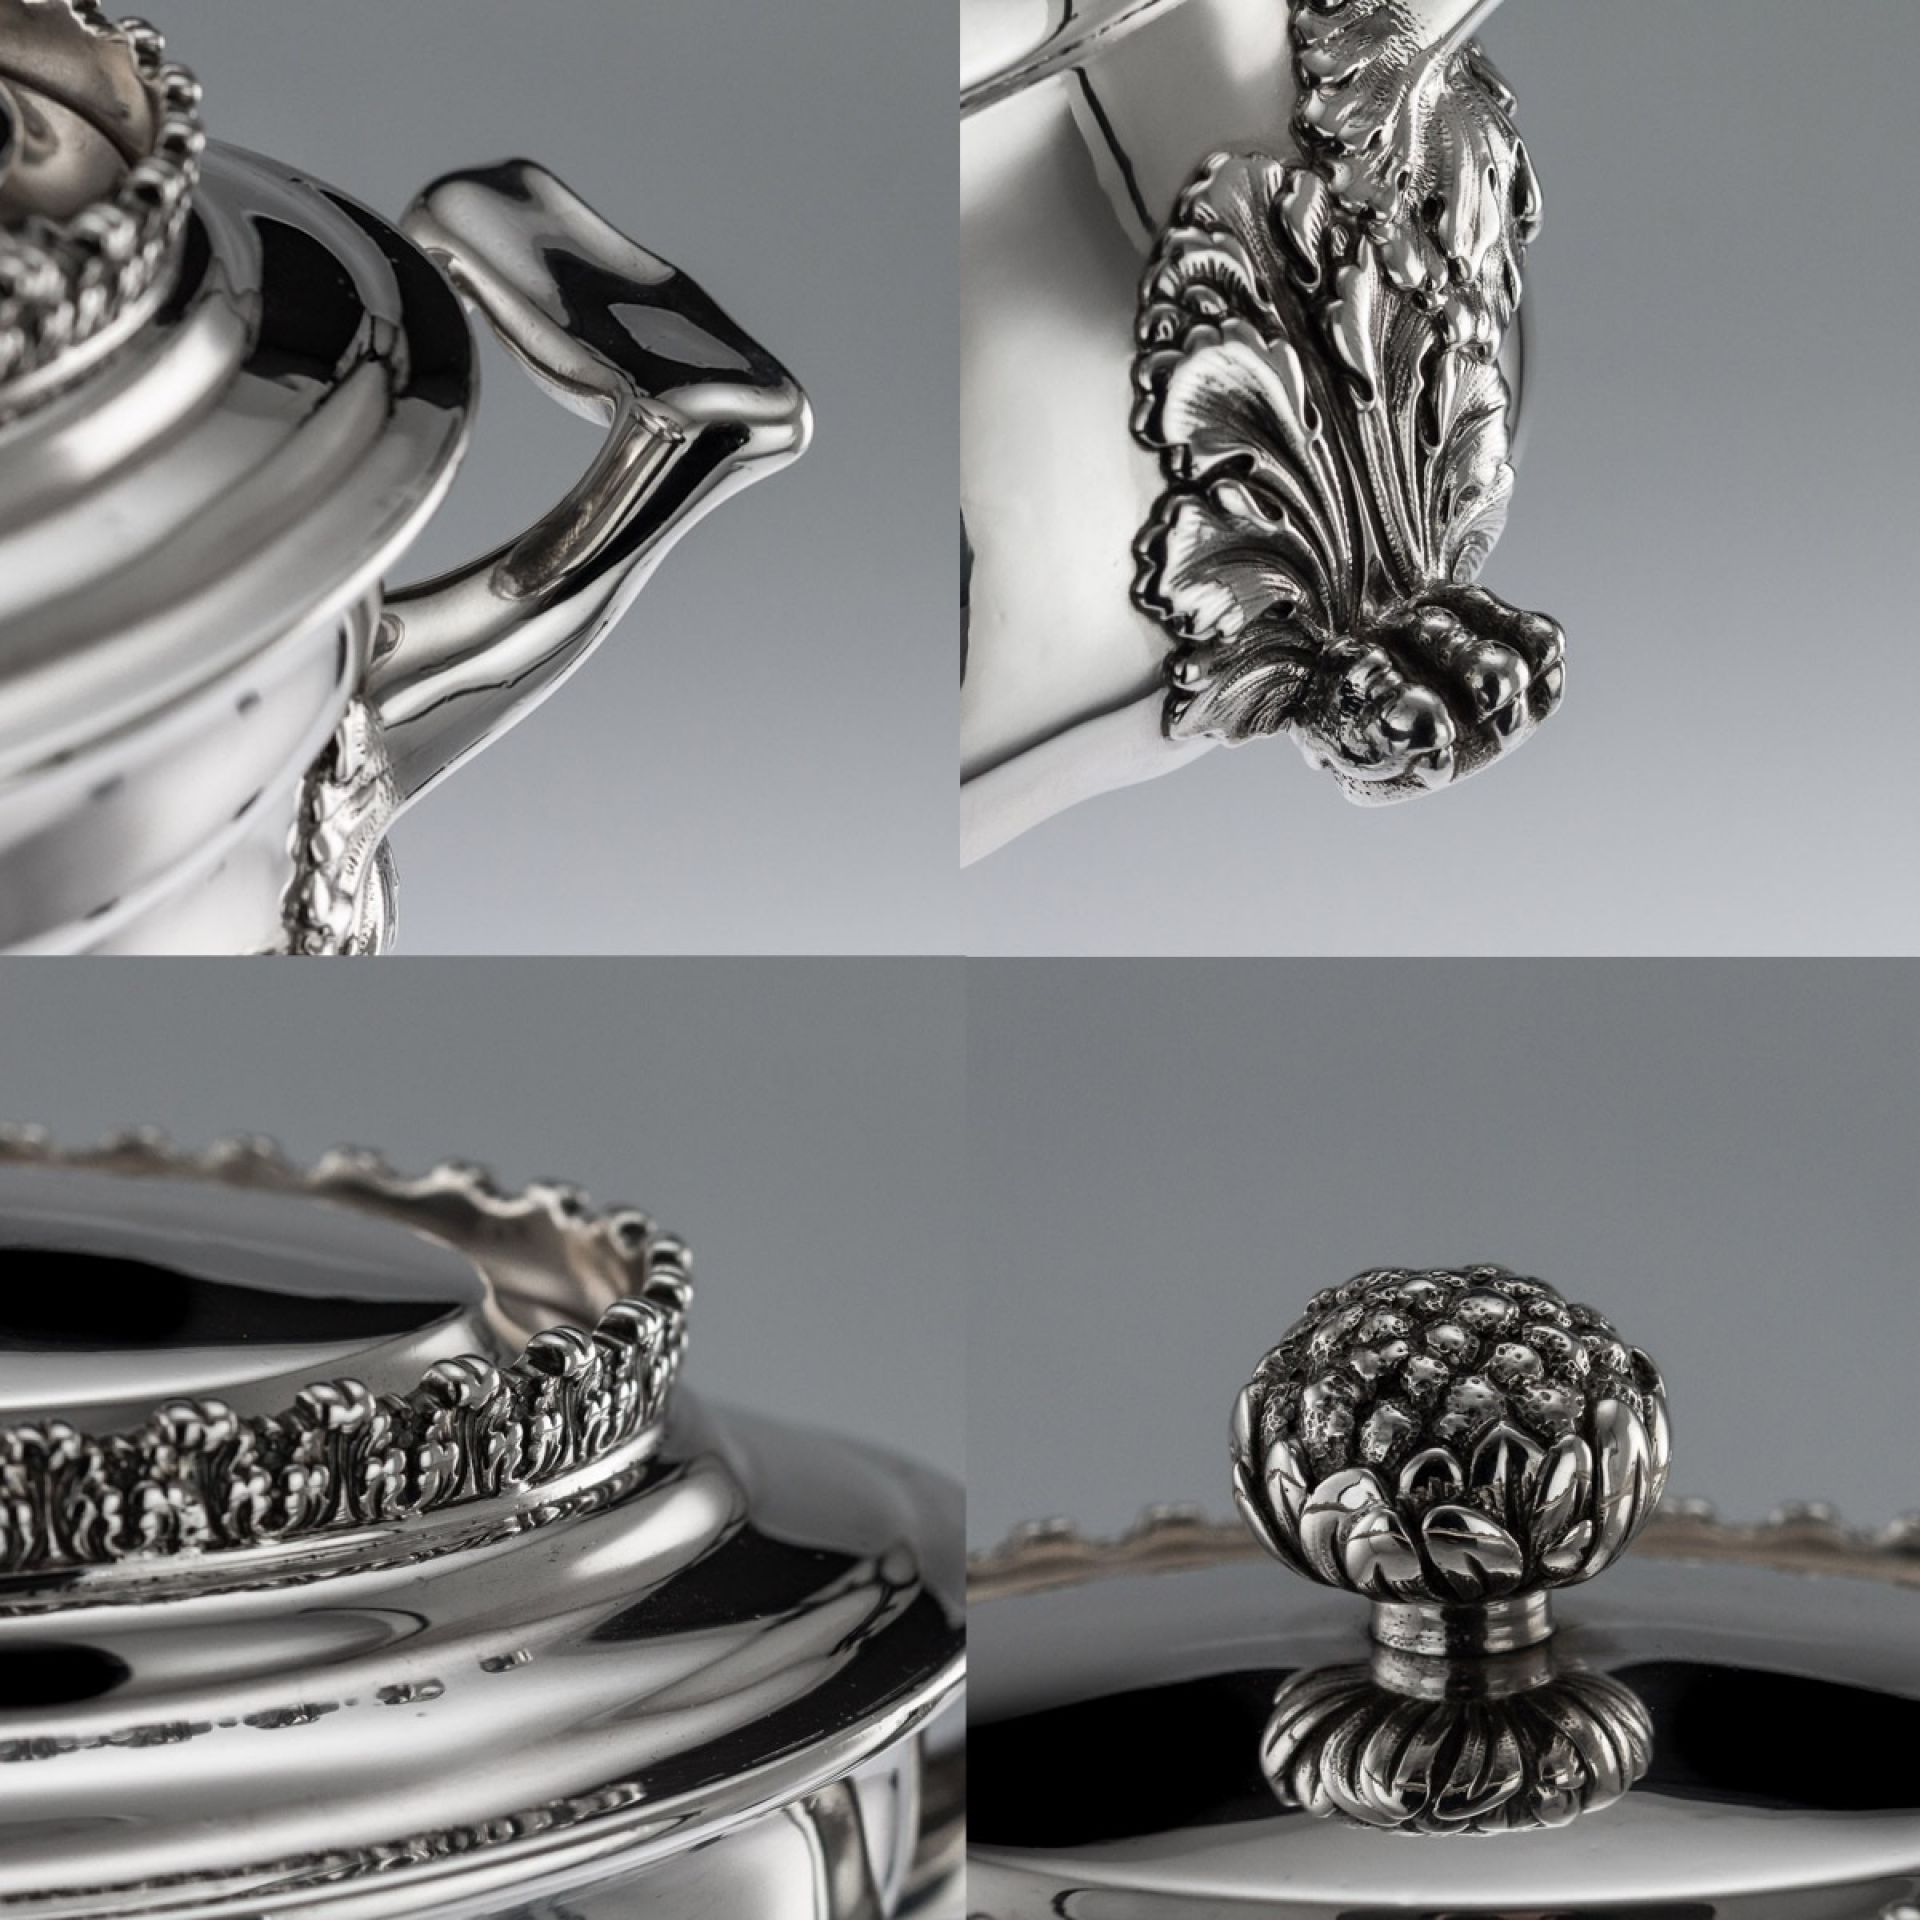 ANTIQUE 19thC AMERICAN TIFFANY & CO SOLID SILVER ACANTHUS TEA SERVICE c.1880